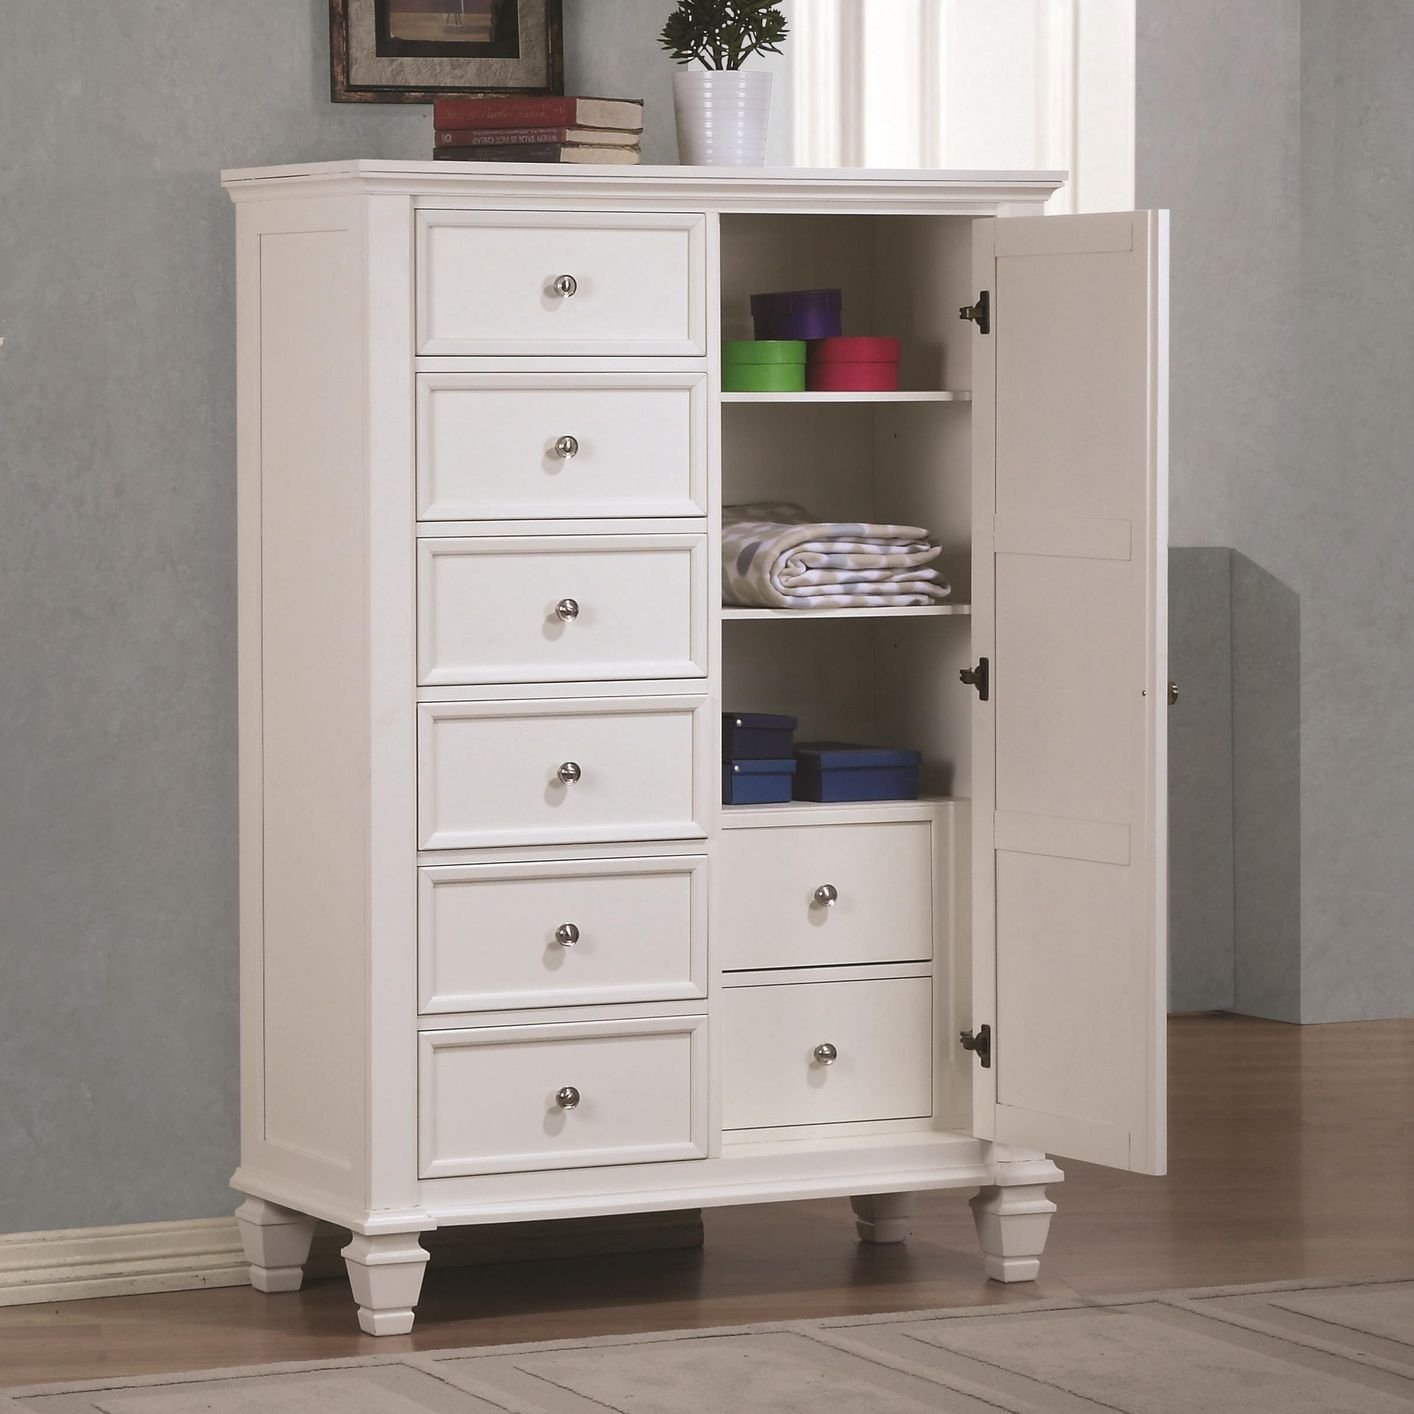 Coaster 201308 White Wood Chest Of Drawers